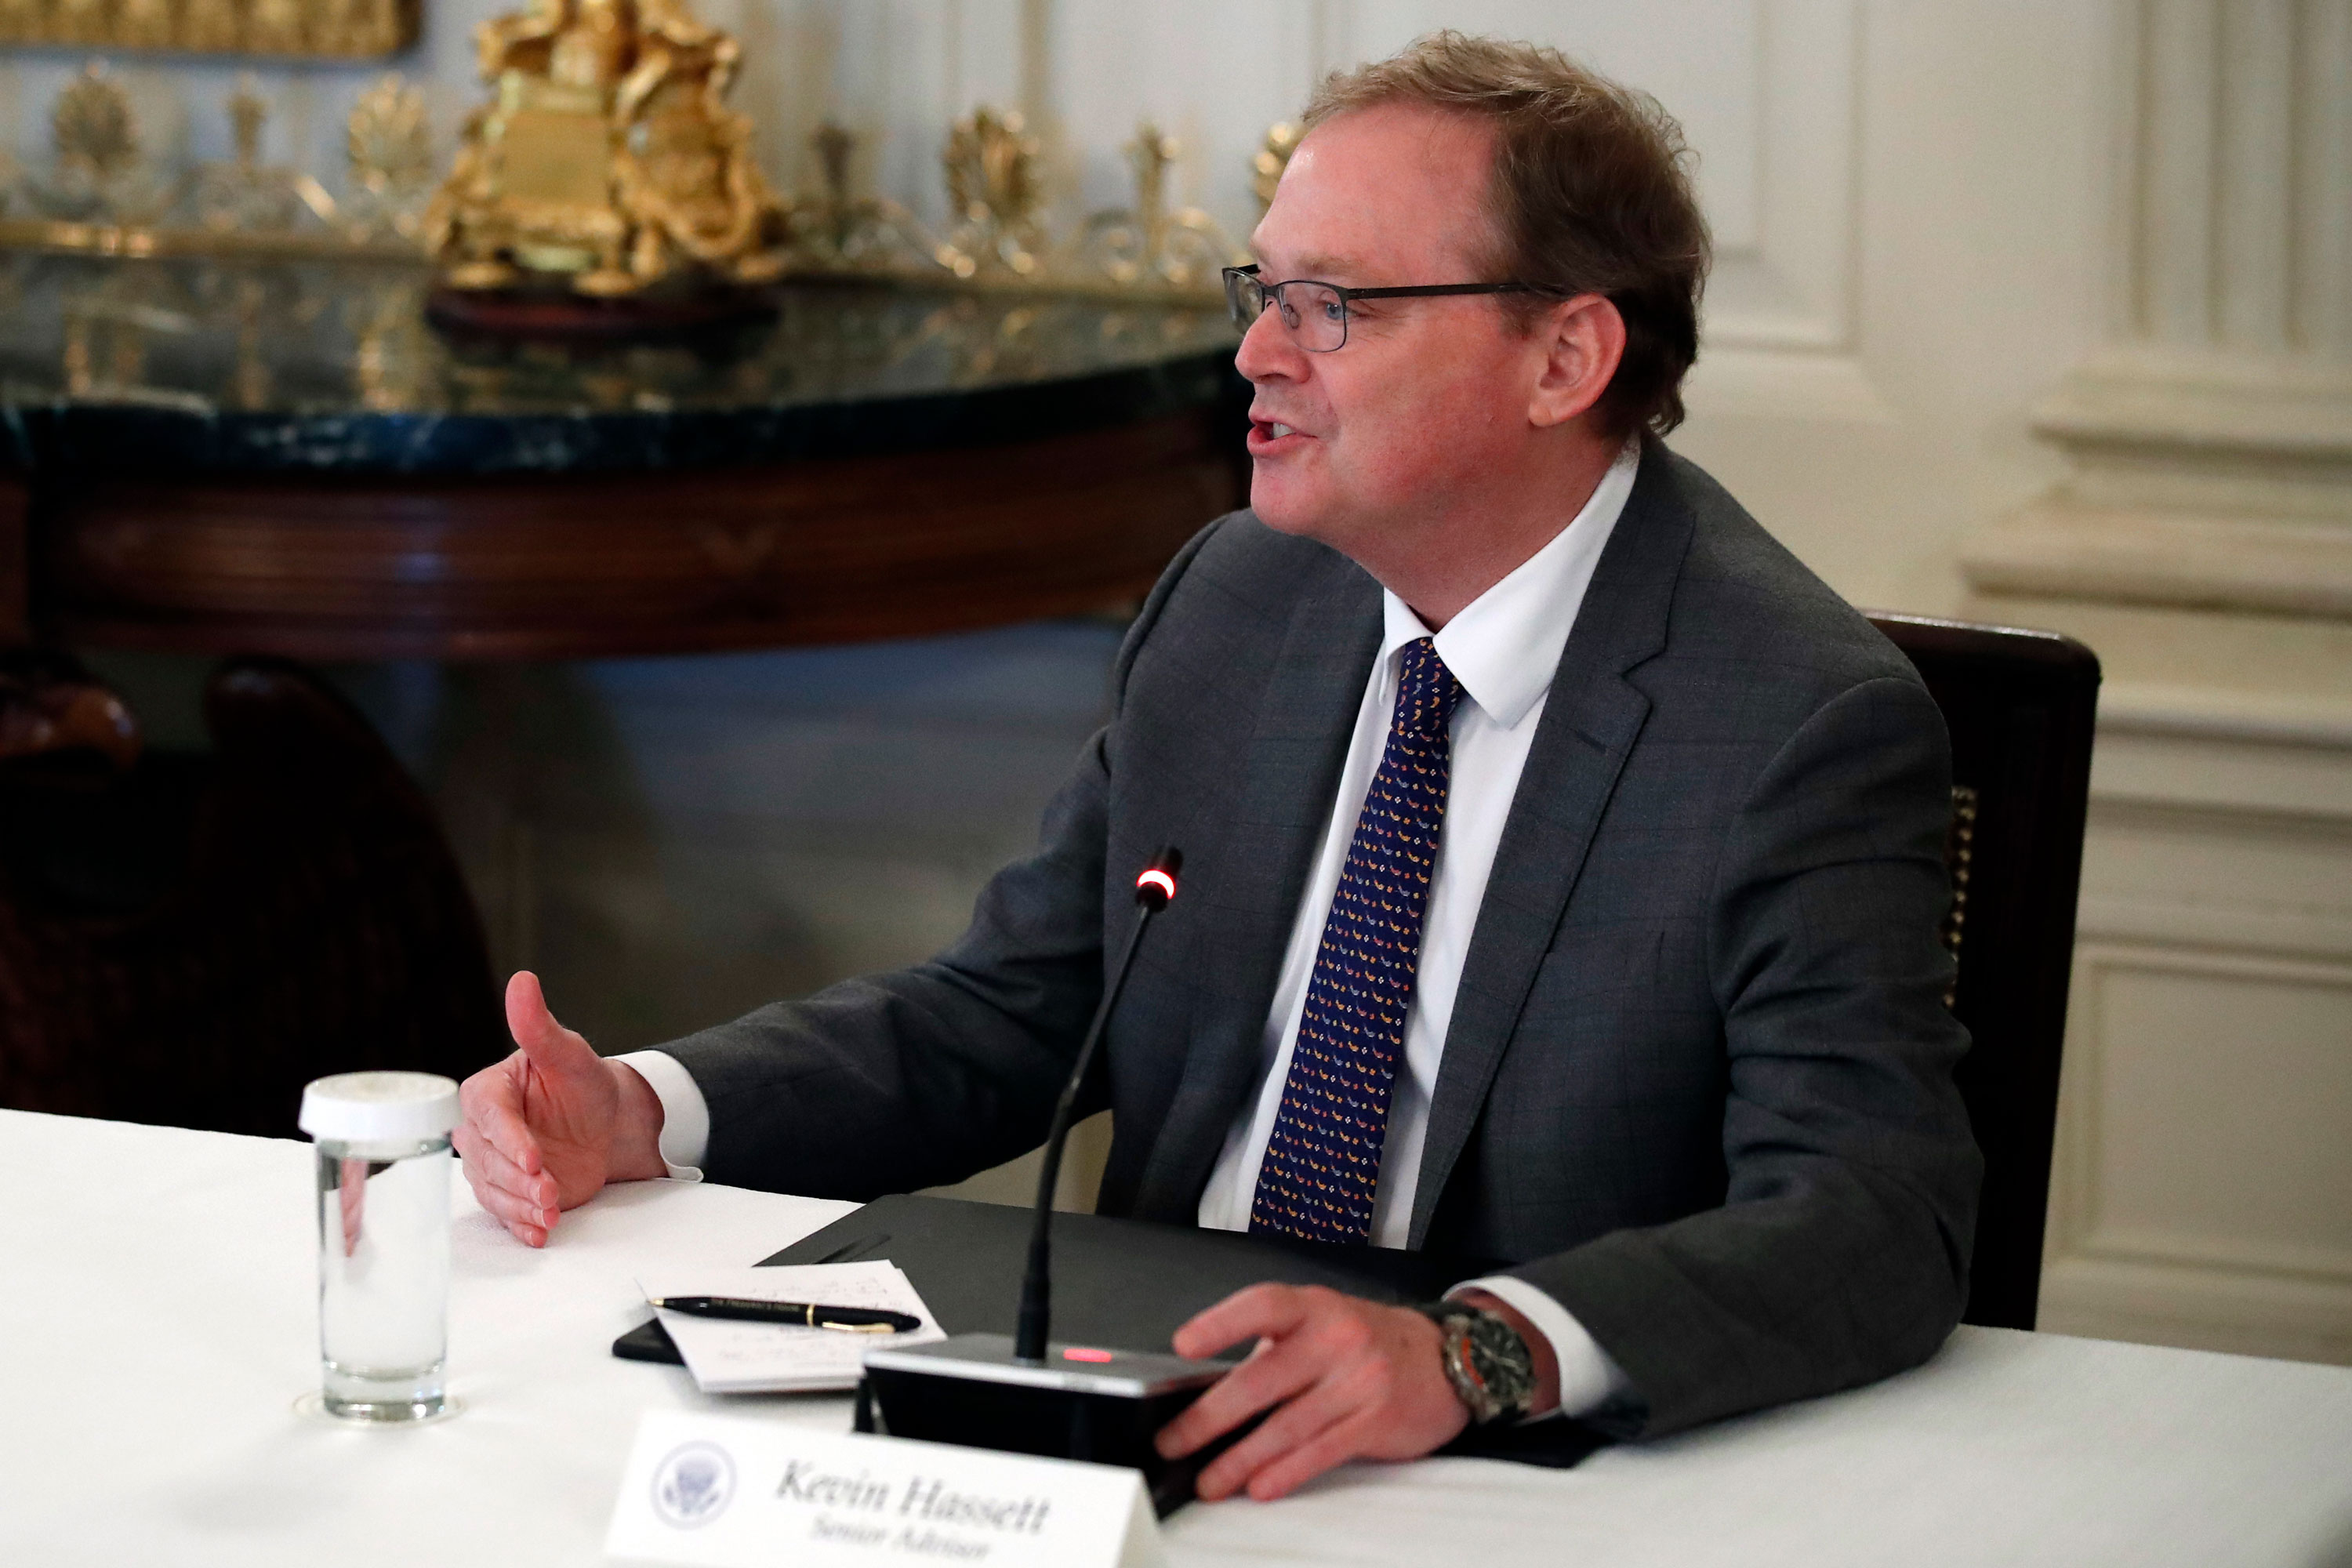 White House senior adviser Kevin Hassett speaks about reopening the country, during a roundtable with industry executives, in the State Dinning Room of the White House, on April 29, in Washington.